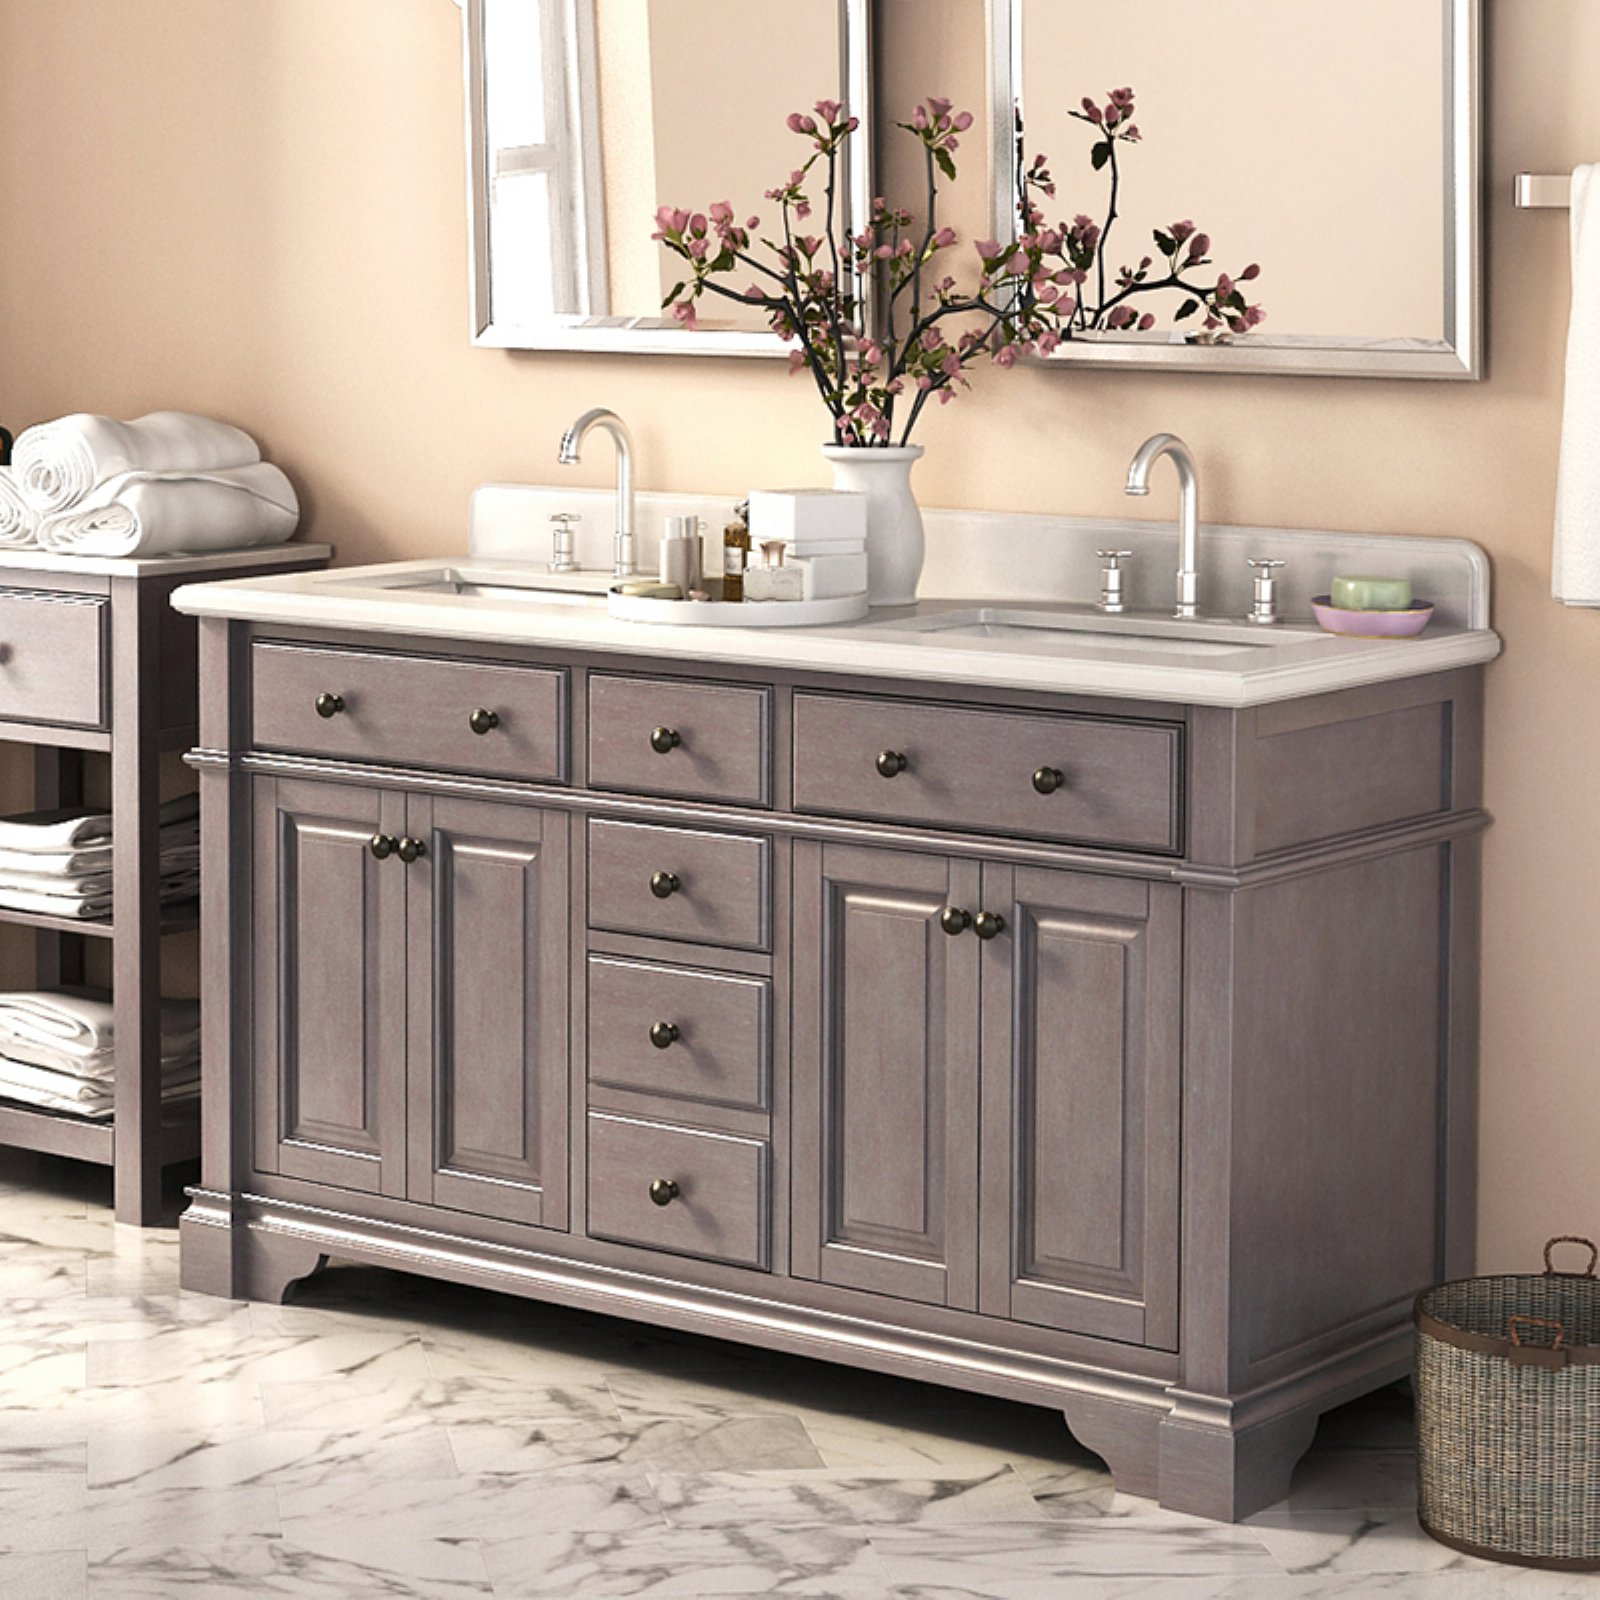 Lanza Casanova WF6956 60 60 In. Double Bathroom Vanity Set